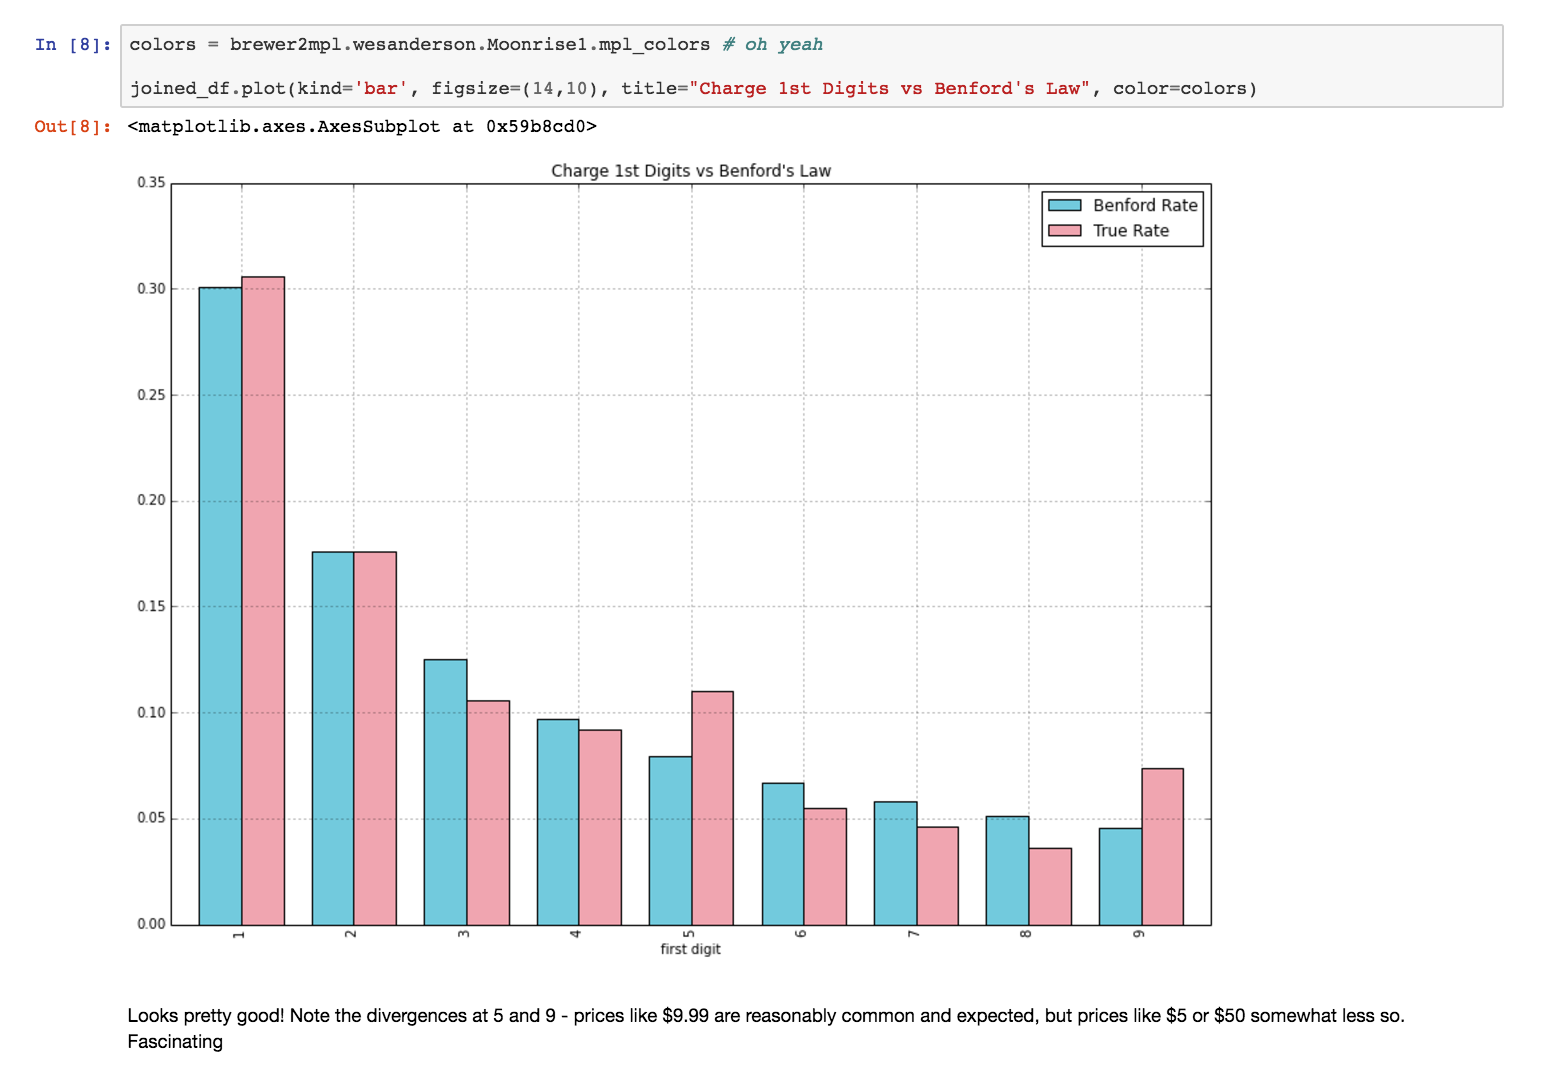 An example of a bar chart output from a Jupyter Notebook